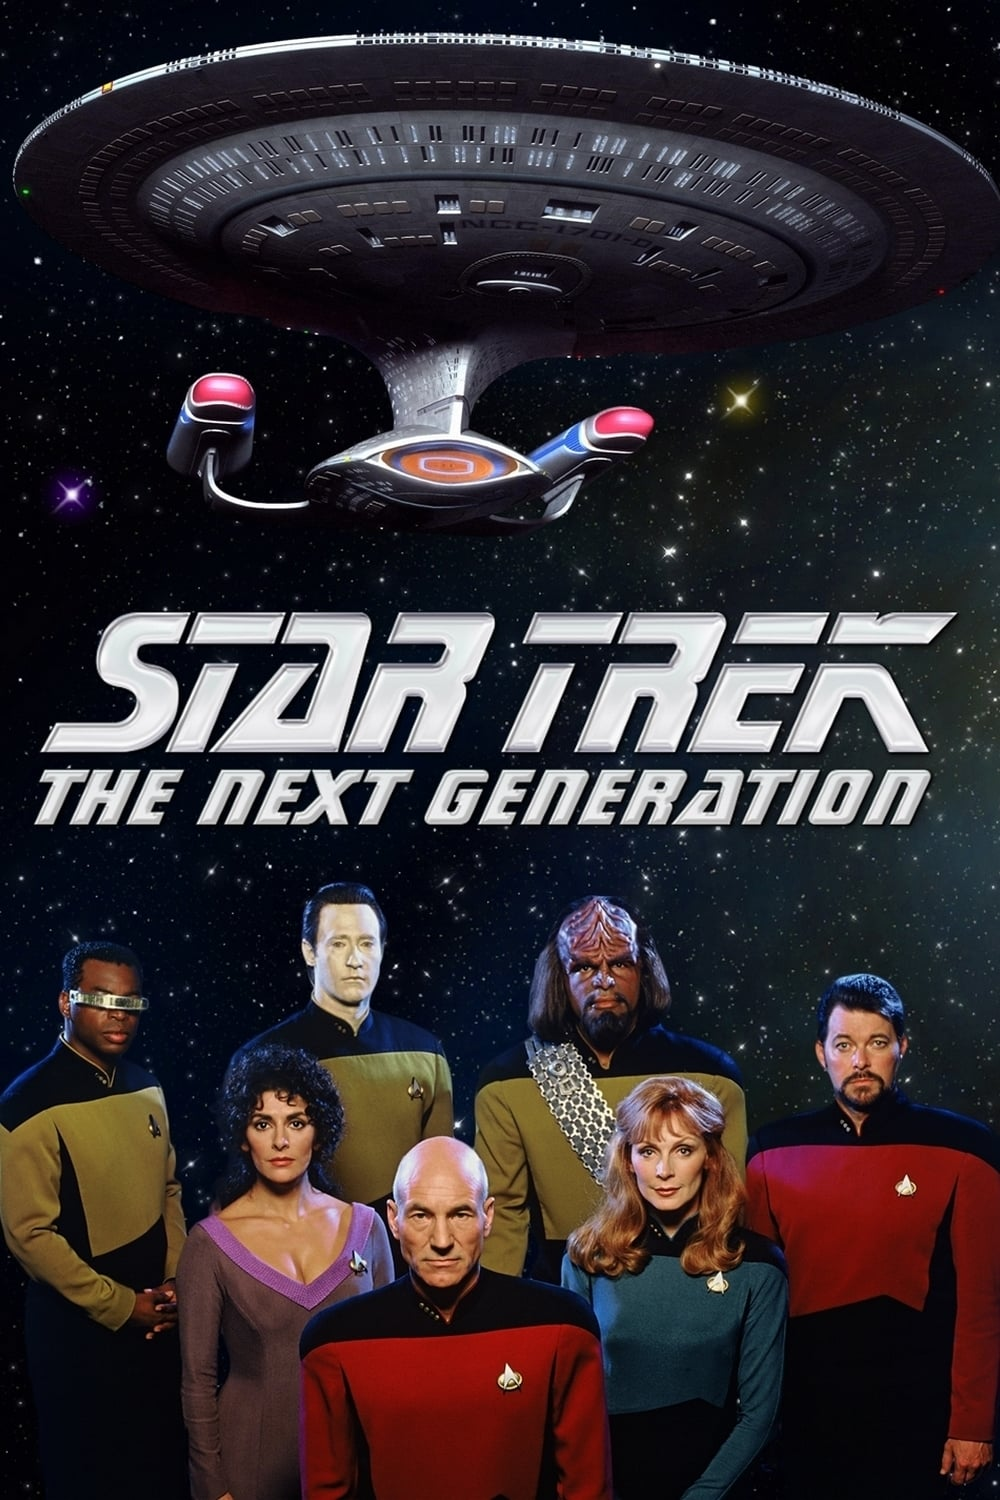 Star Trek: The Next Generation